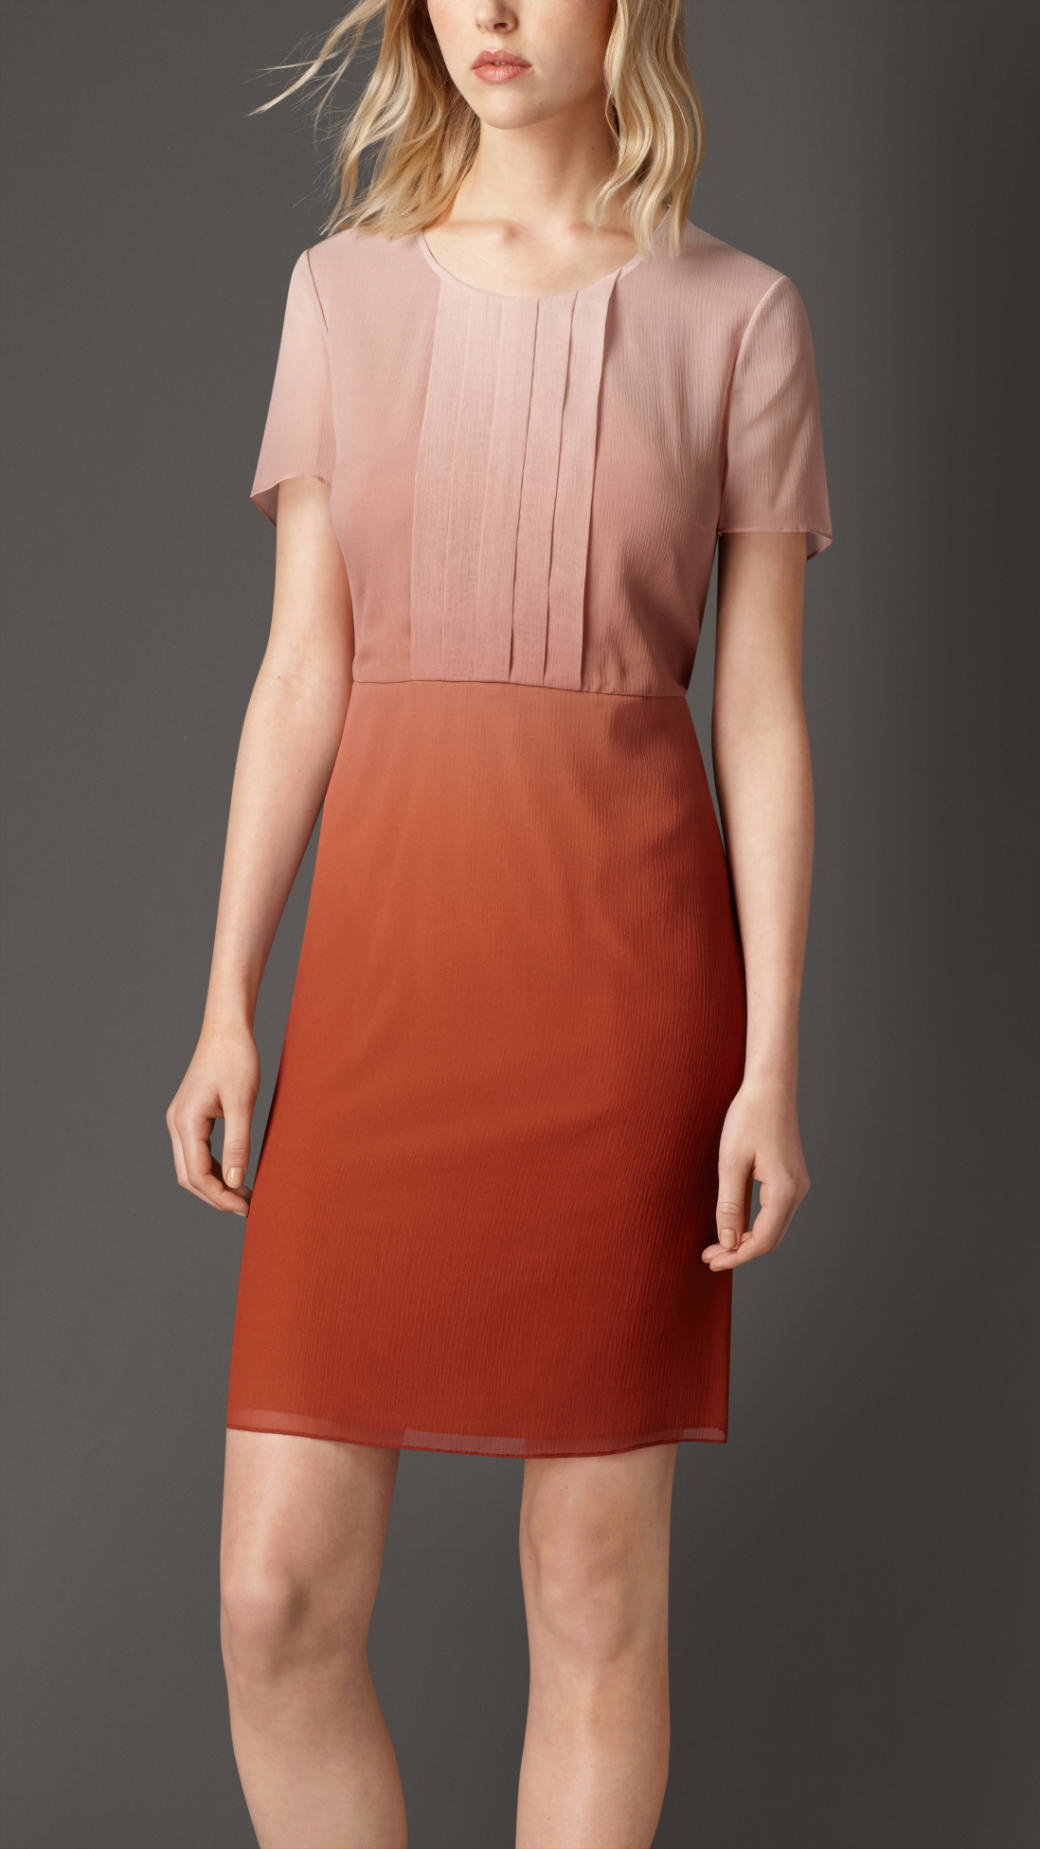 Russet Gown_Other dresses_dressesss